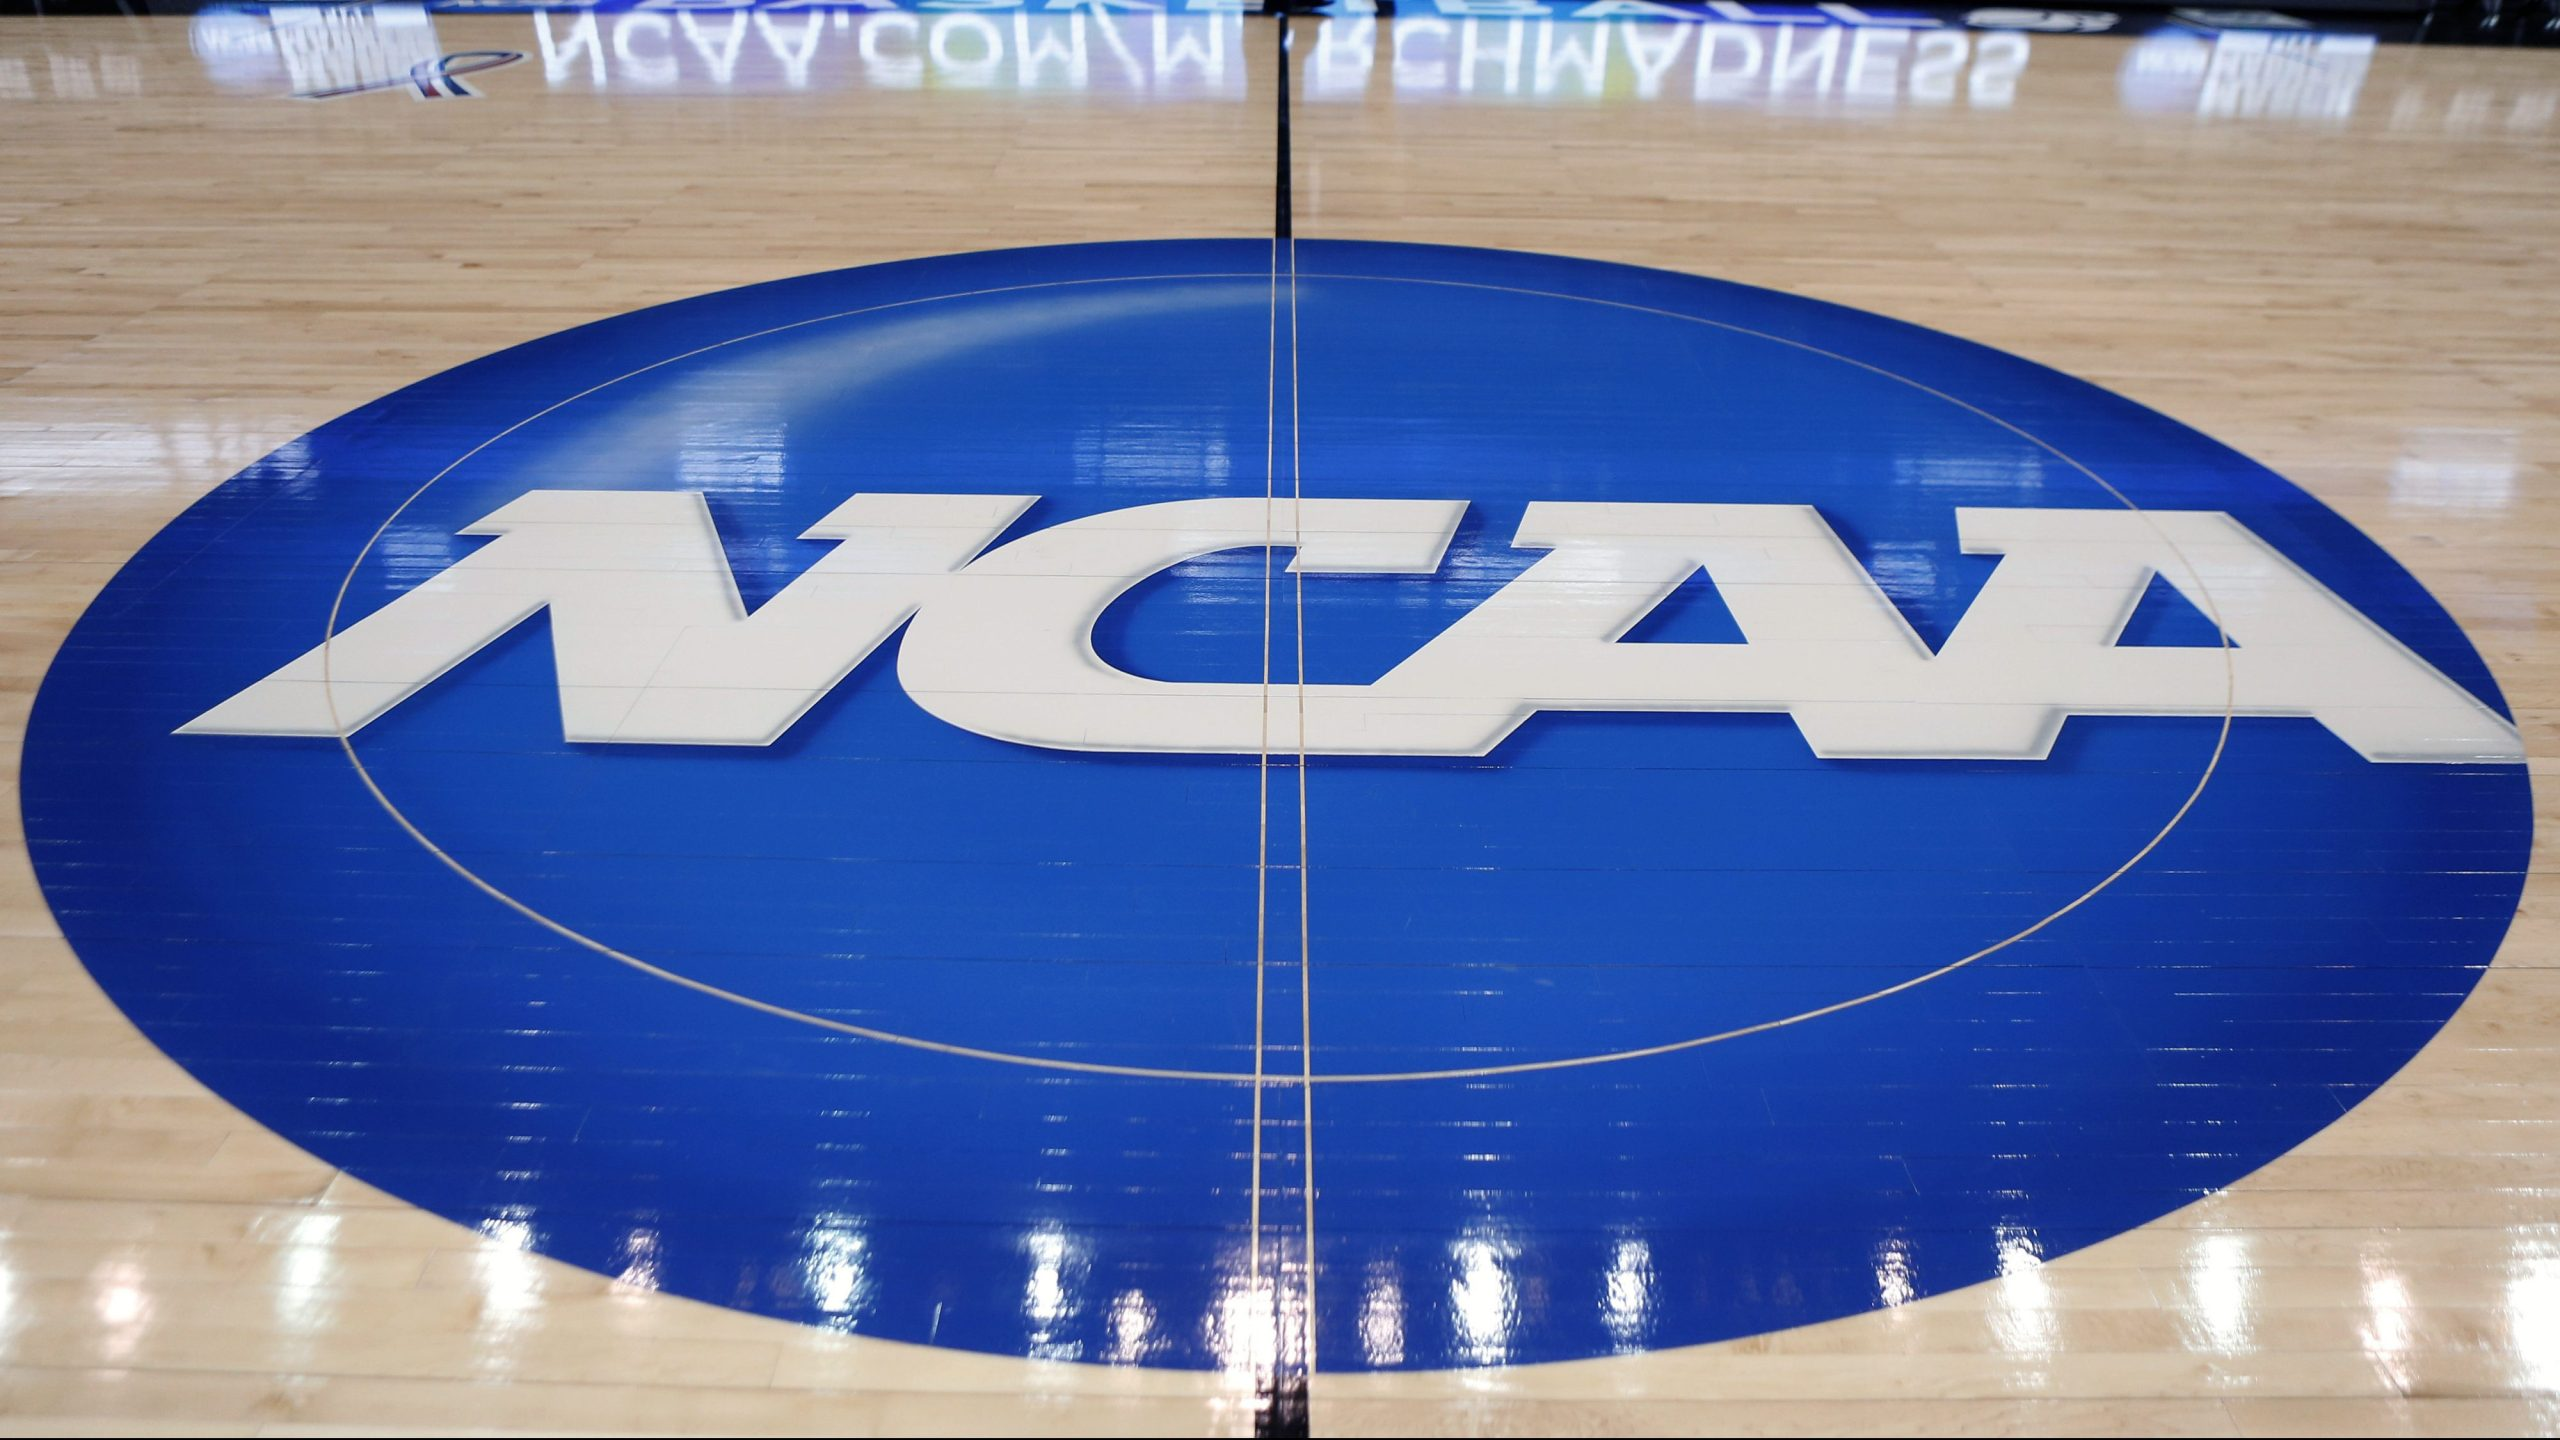 The NCAA logo is displayed at center court as work continues at The Consol Energy Center in Pittsburgh for the NCAA college basketball tournament on March 18, 2015. (Keith Srakocic / Associated Press)